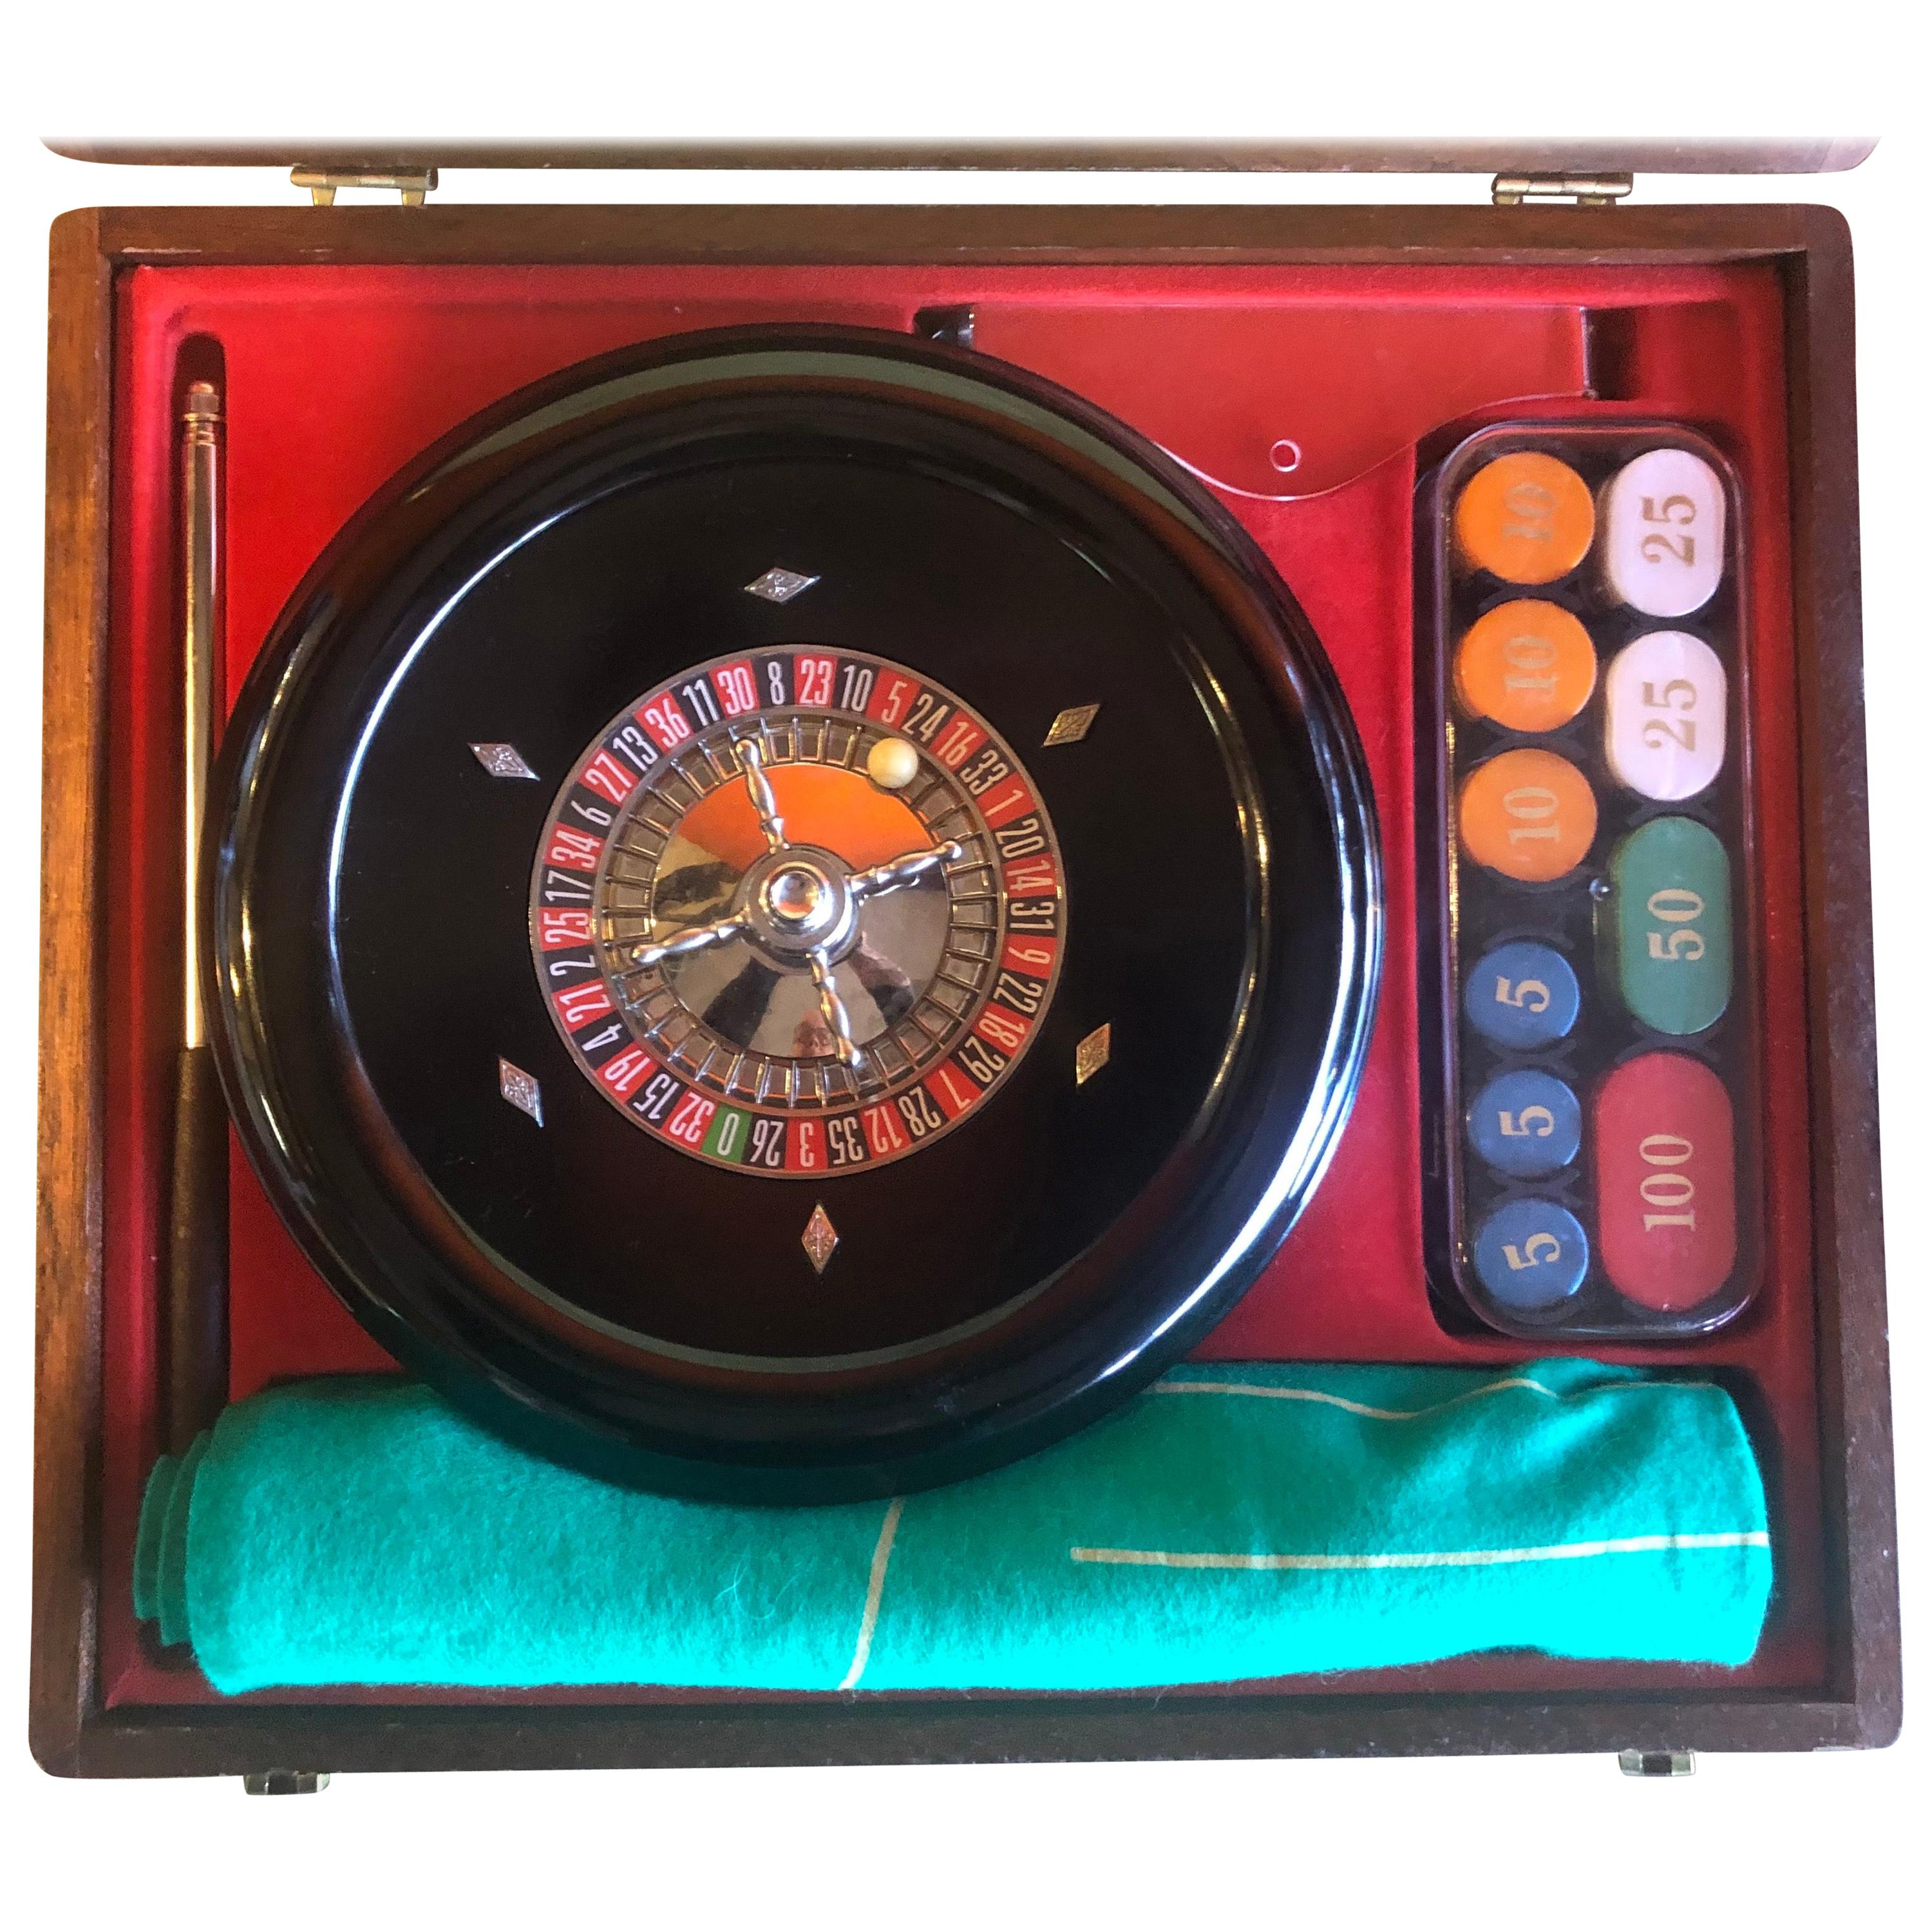 Vintage Roulette Set in Case by Rottgames